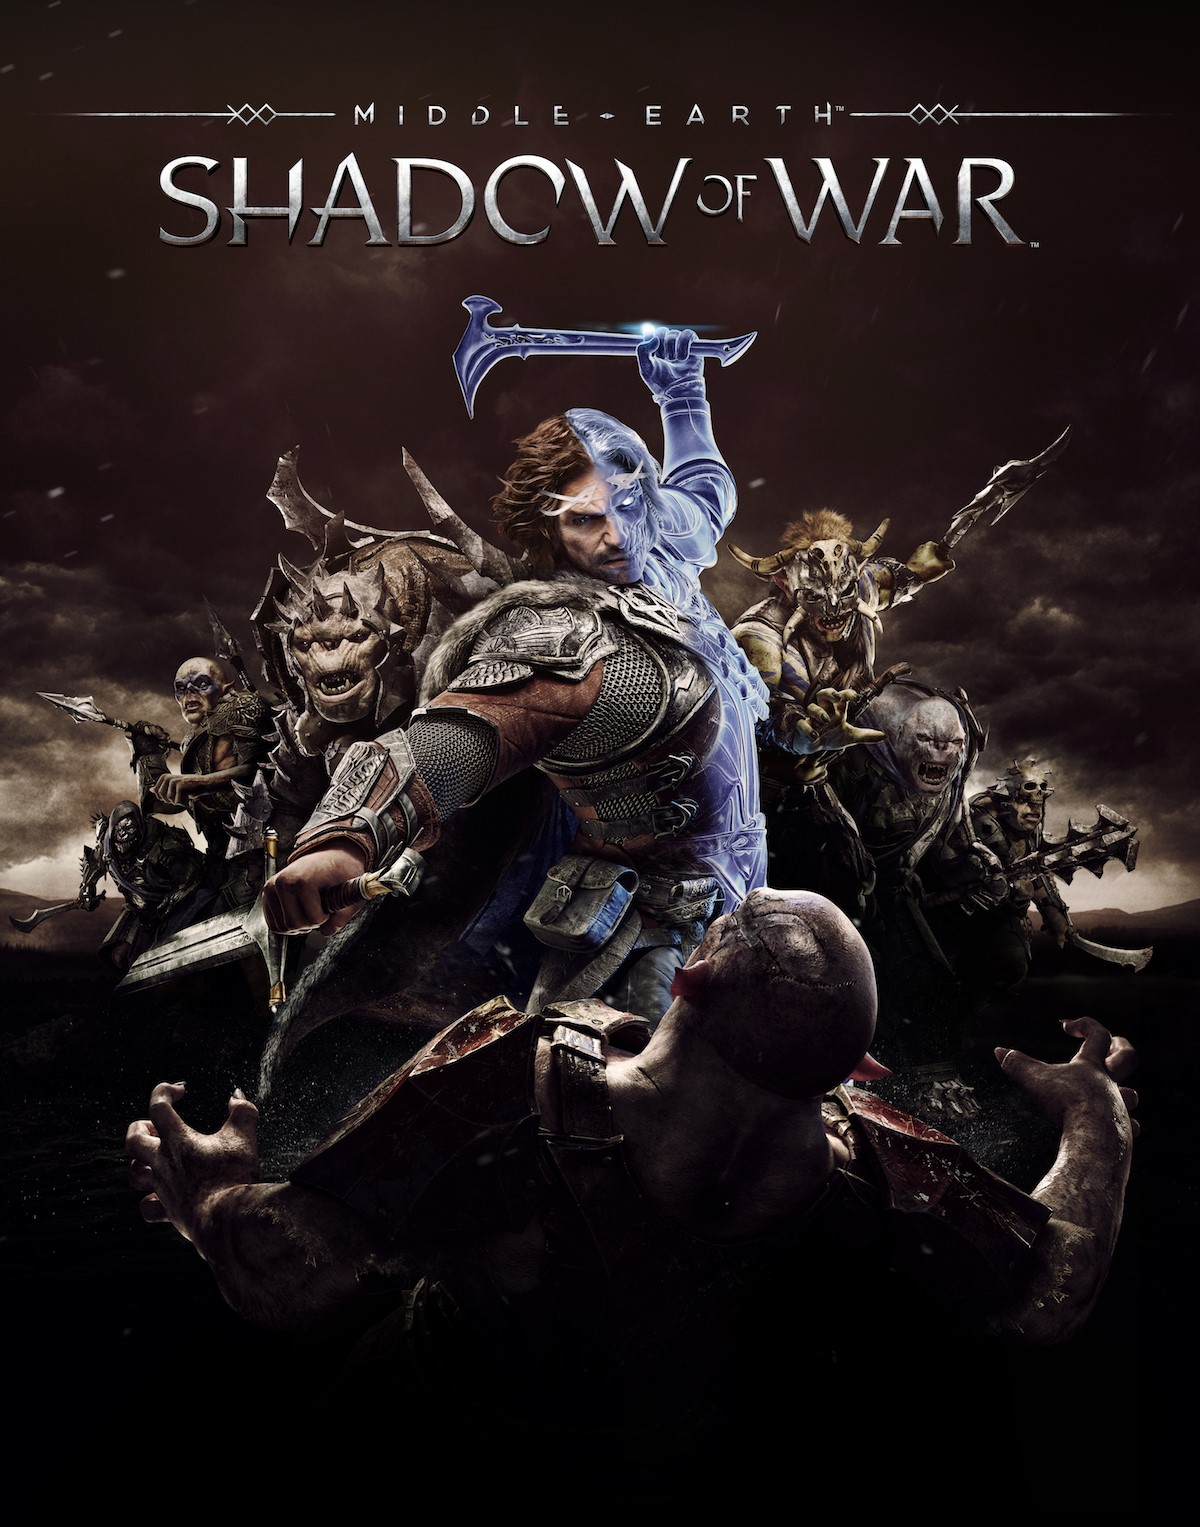 Middle-earth: Shadow of War (Seam KEY)